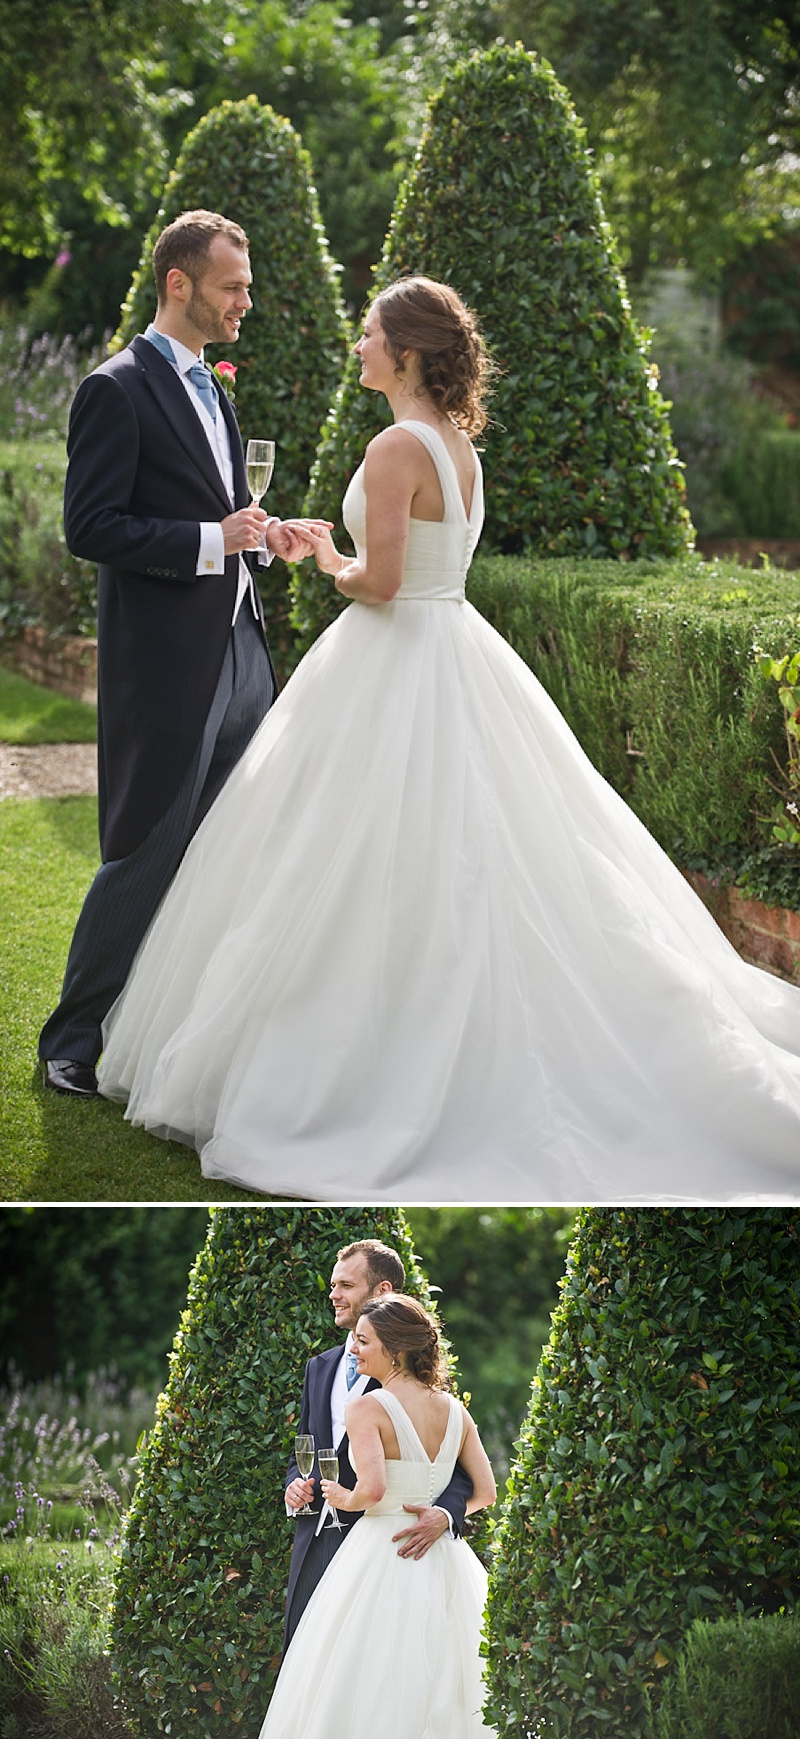 An Elegant Contemporary Wedding At Northbrook Park Farnham With Bride In Ellis Bridal Gown And Blue Benjamin Adams Shoes And Bridesmaids In Ted Baker Images By Especially Amy_0017